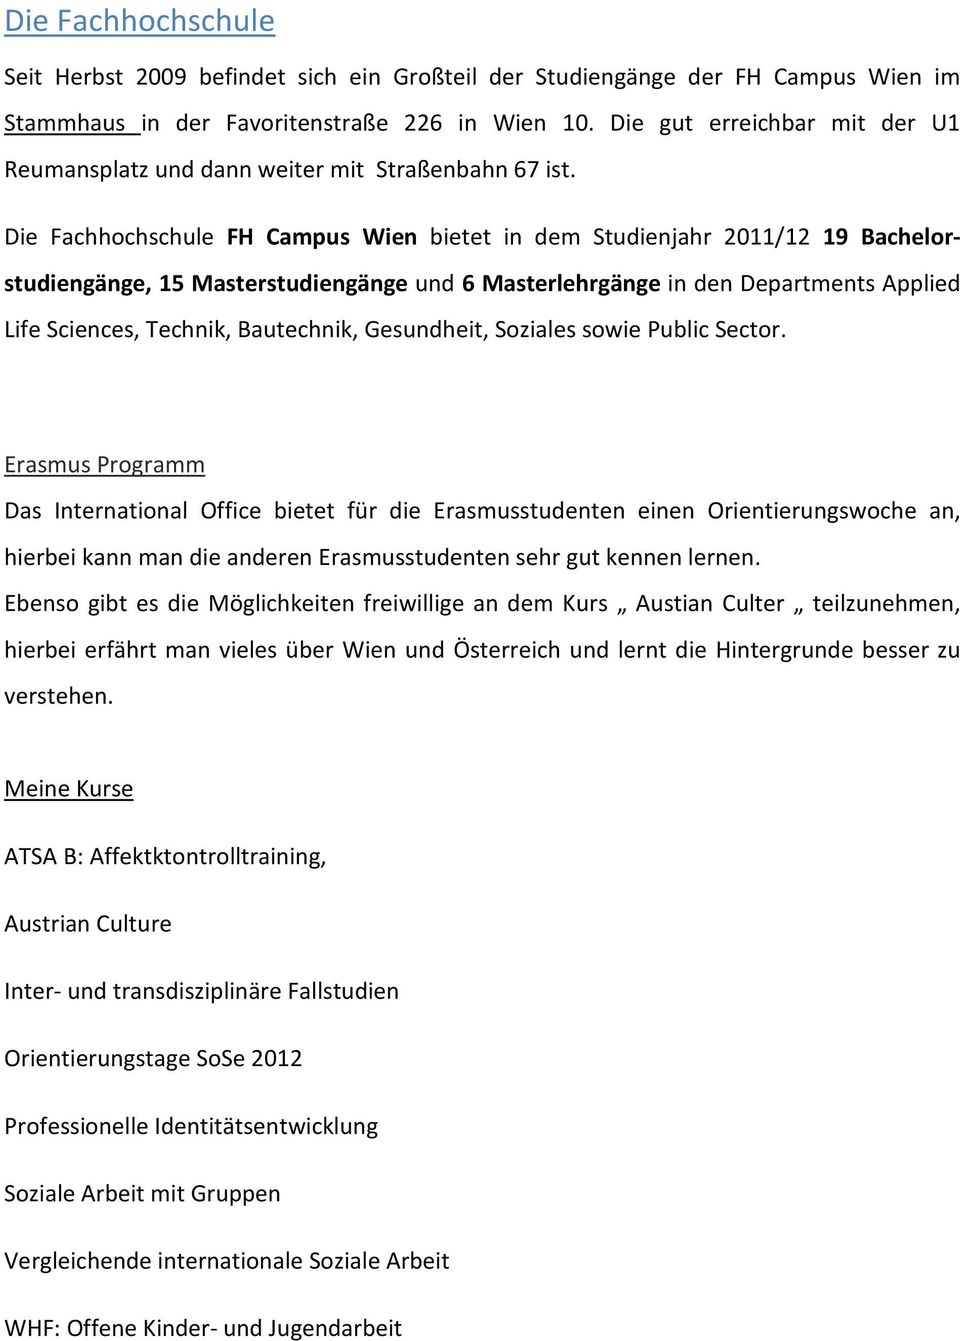 Die Fachhochschule FH Campus Wien bietet in dem Studienjahr 2011/12 19 Bachelorstudiengänge, 15 Masterstudiengänge und 6 Masterlehrgänge in den Departments Applied Life Sciences, Technik, Bautechnik,